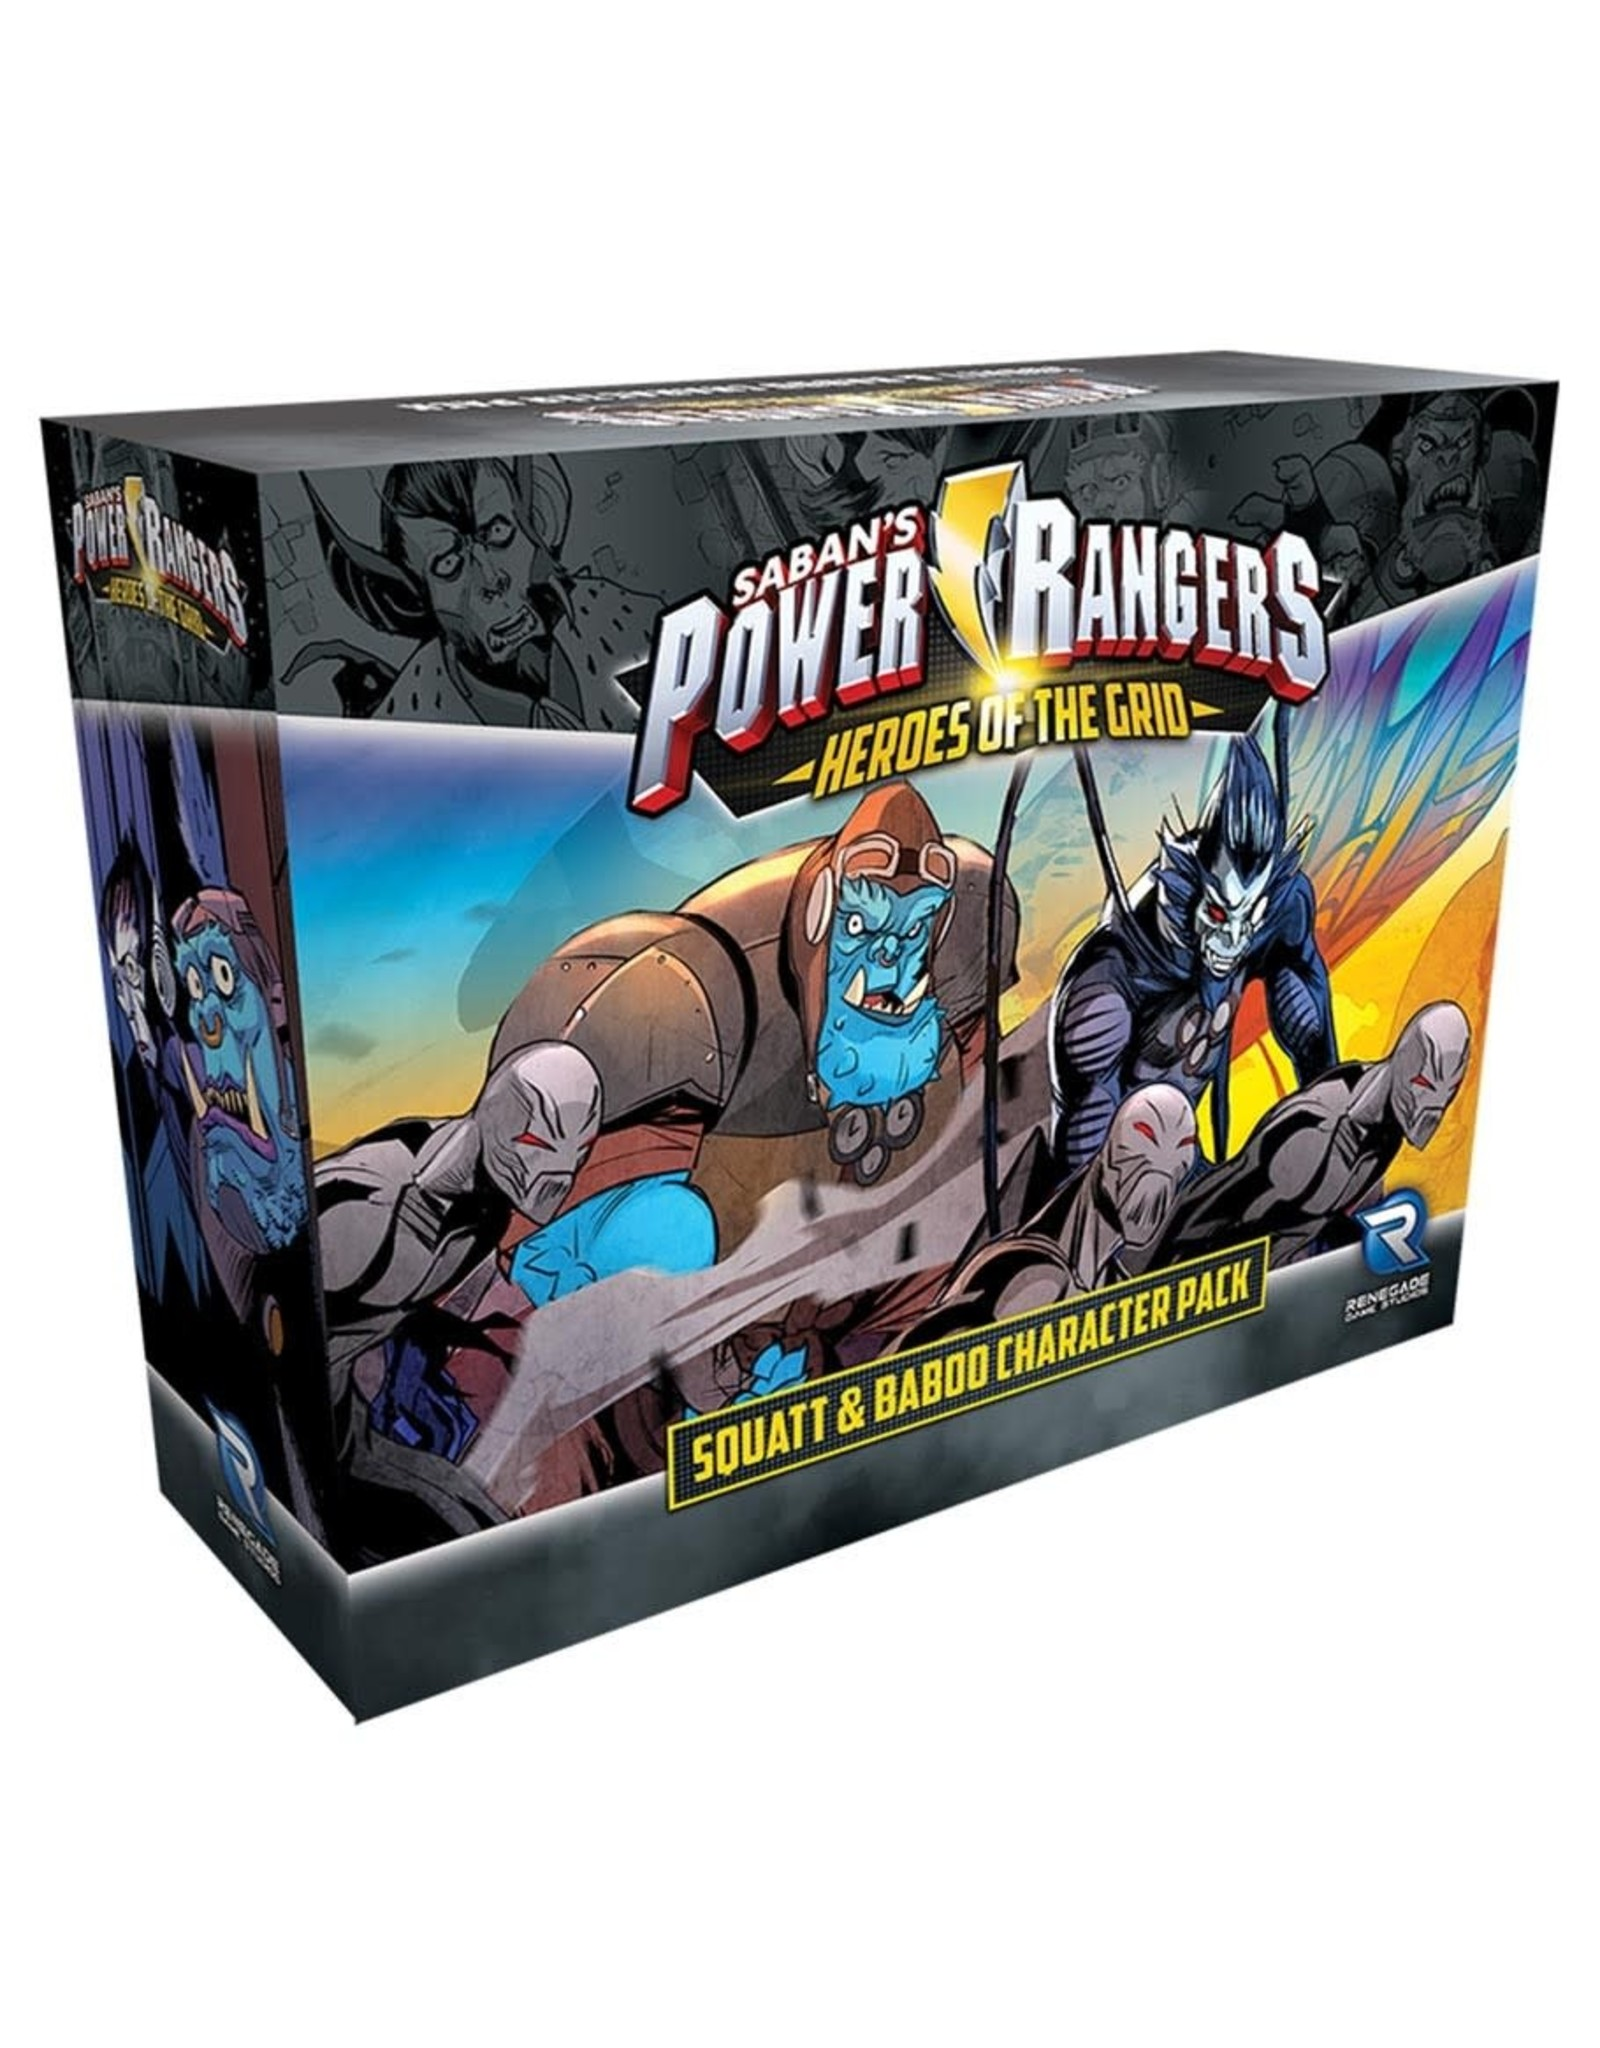 Renegade Squatt & Baboo Character Pack - Power Rangers: Heroes of the Grid